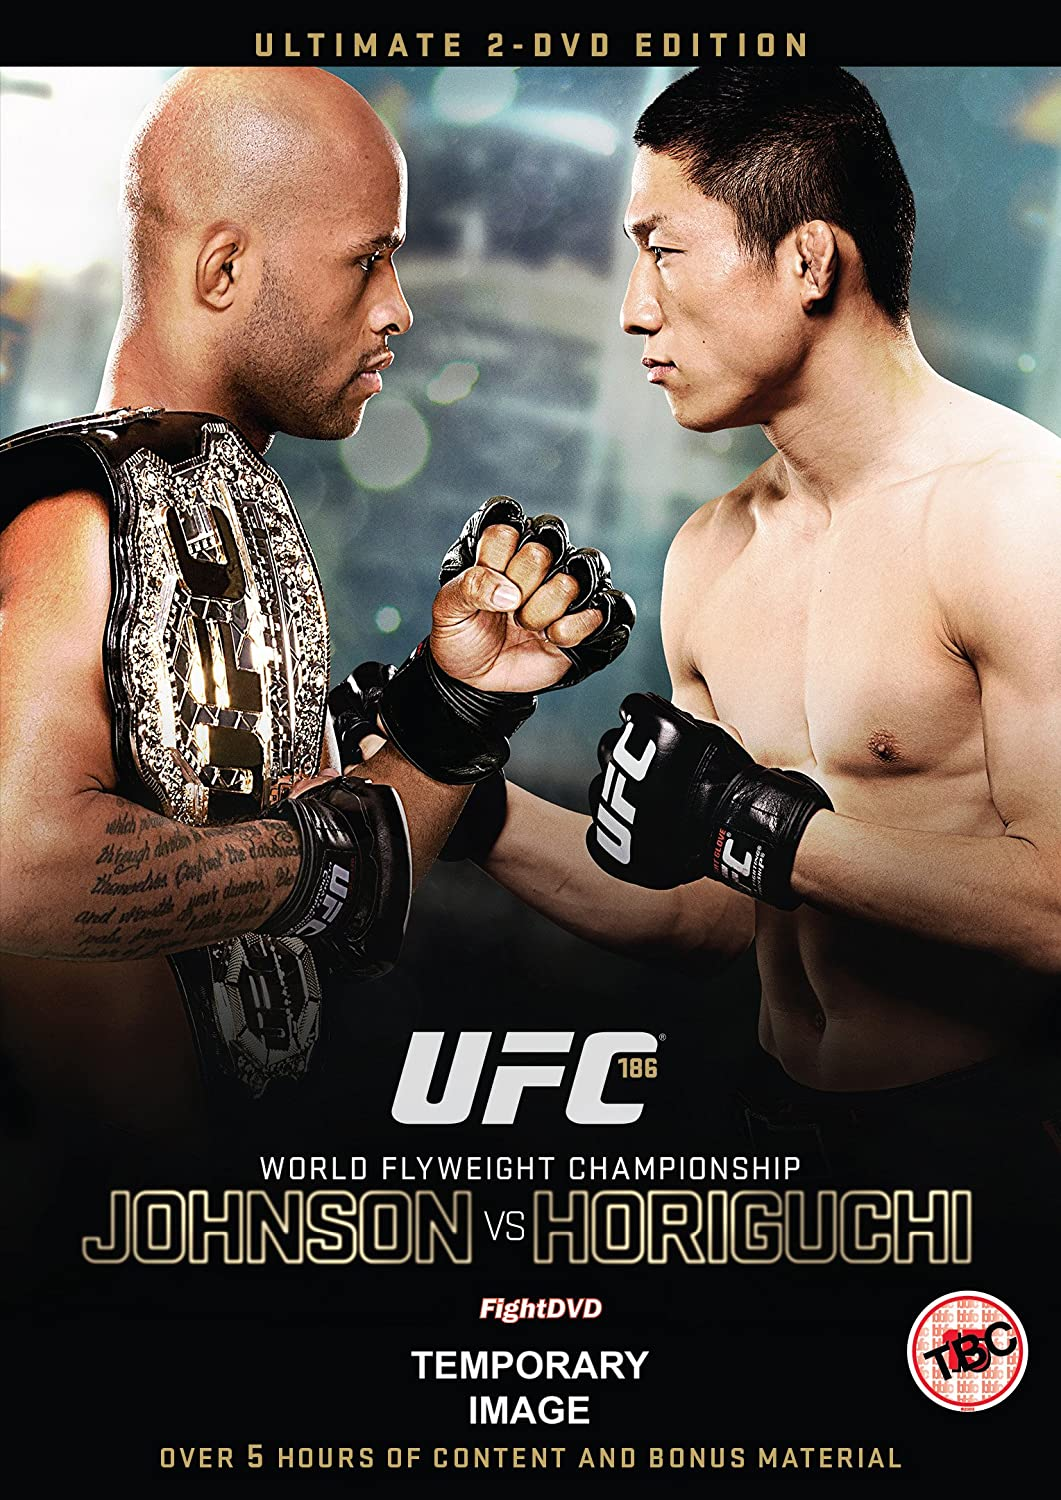 Amazon.com: UFC 186 - Johnson vs. Horiguchi Extended Edition DVD ...